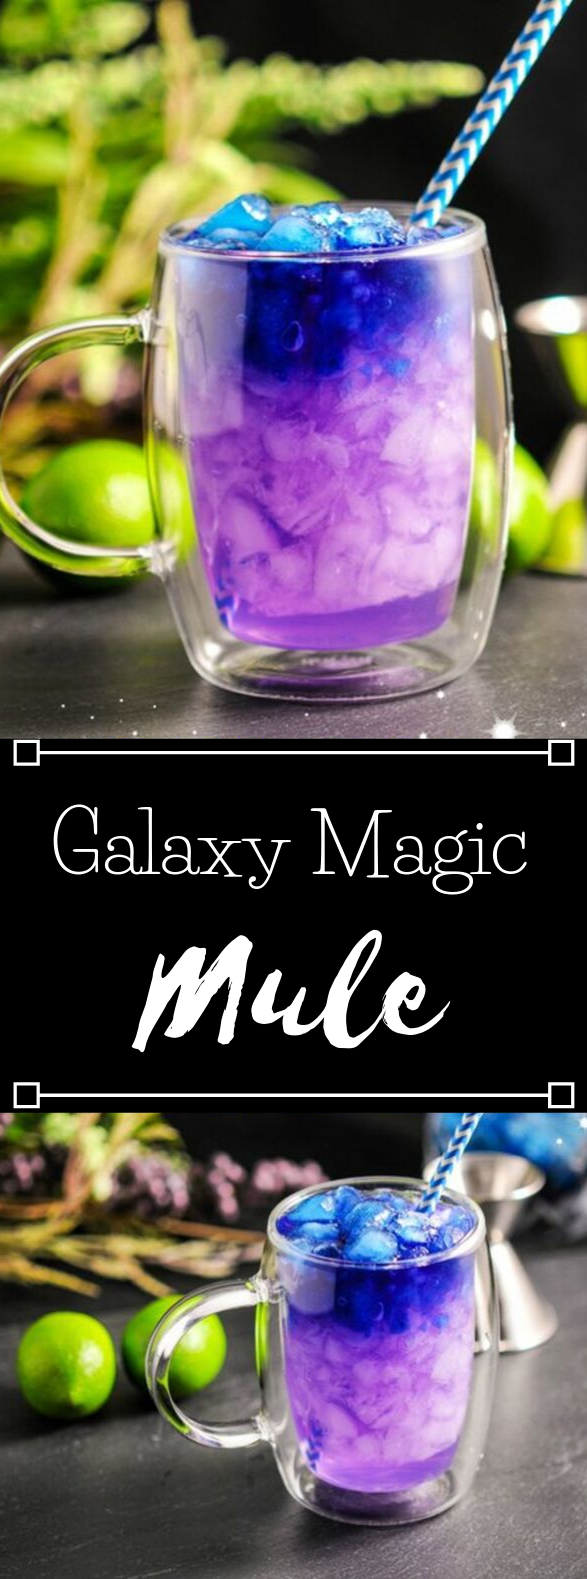 THE GALAXY MAGIC MULE #galaxydrink #party #blue #magic #sangria